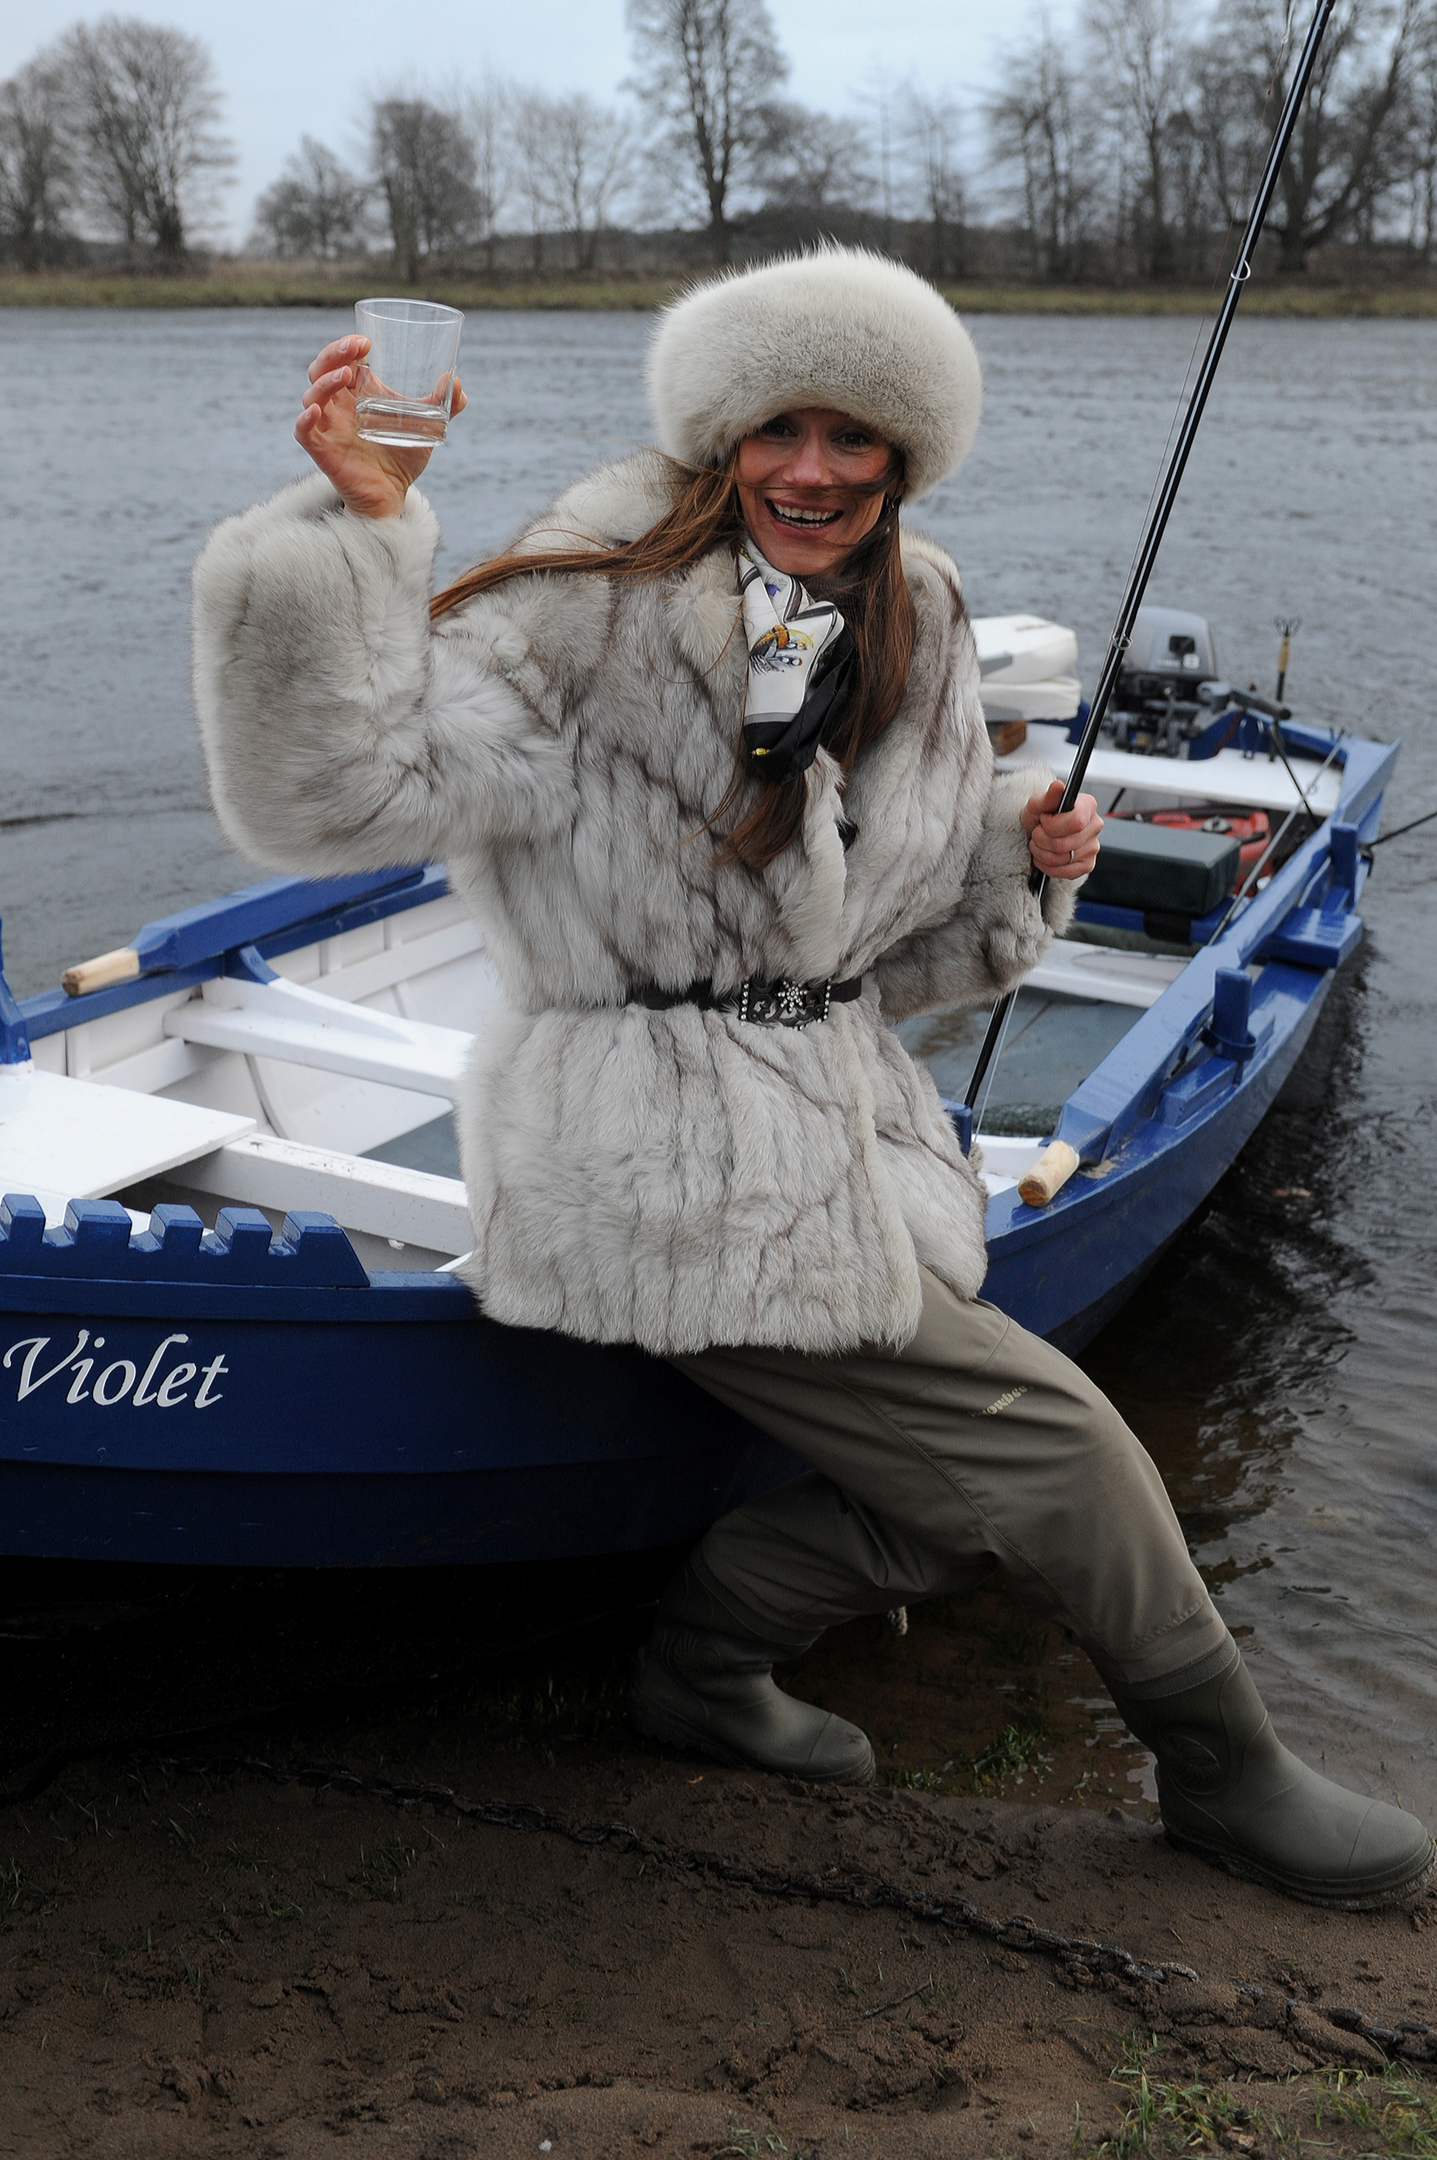 Claire Mercer Nairne blessing a new boat on the River Tay in early 2015.